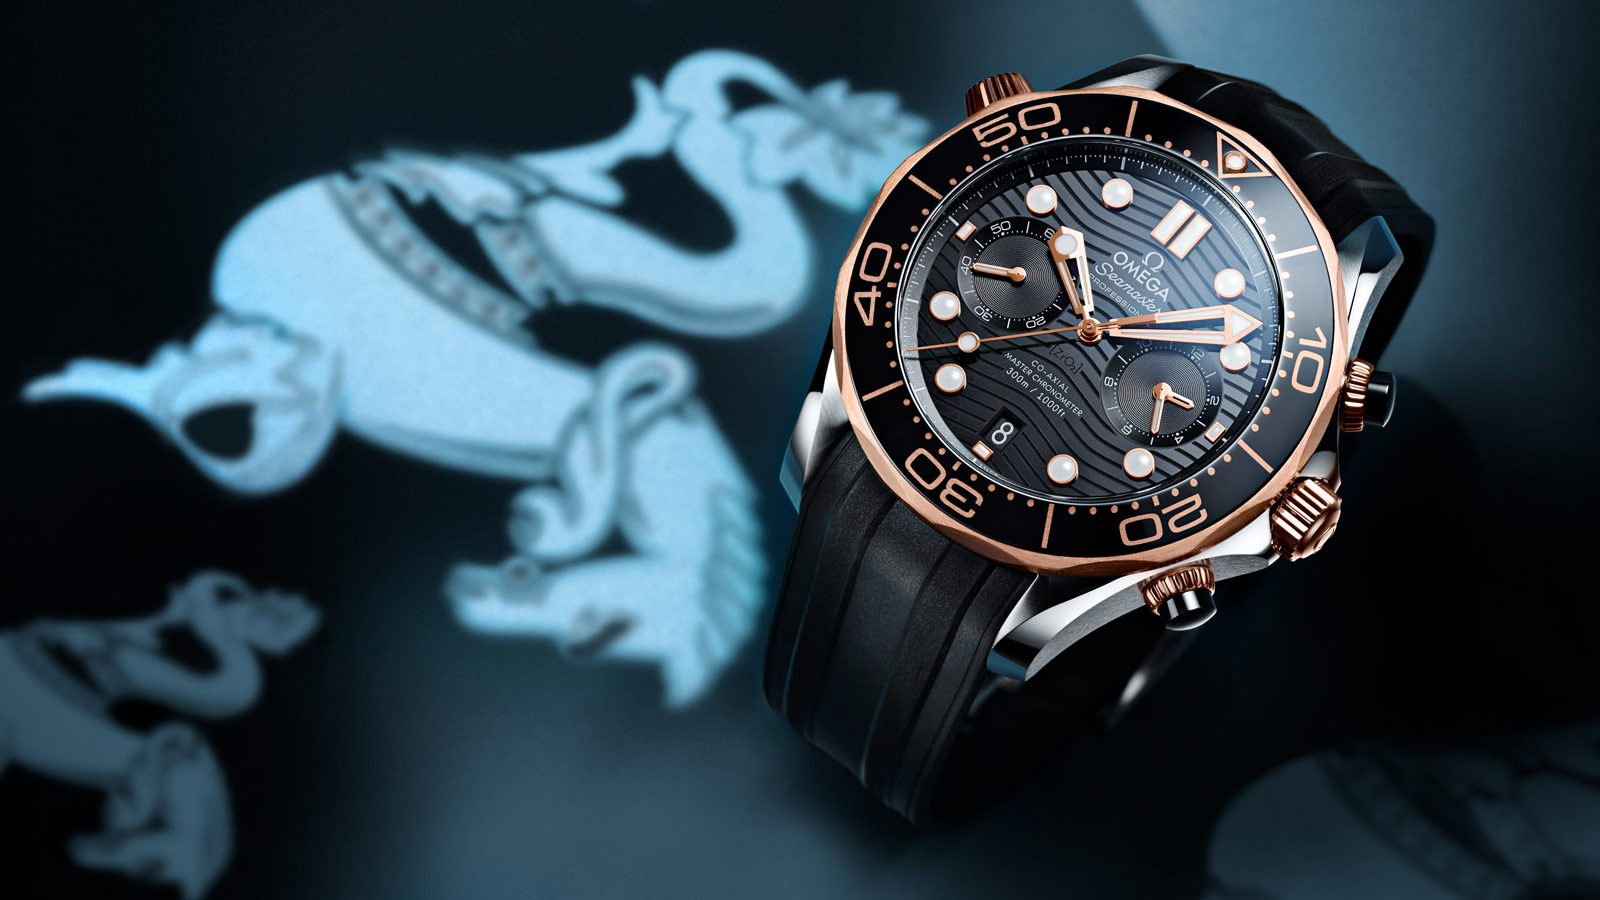 Seamaster Diver 300 M Diver 300M Chronographe Omega Co‑Axial Master Chronometer 44 mm - 210.22.44.51.01.001 - Afficher 1